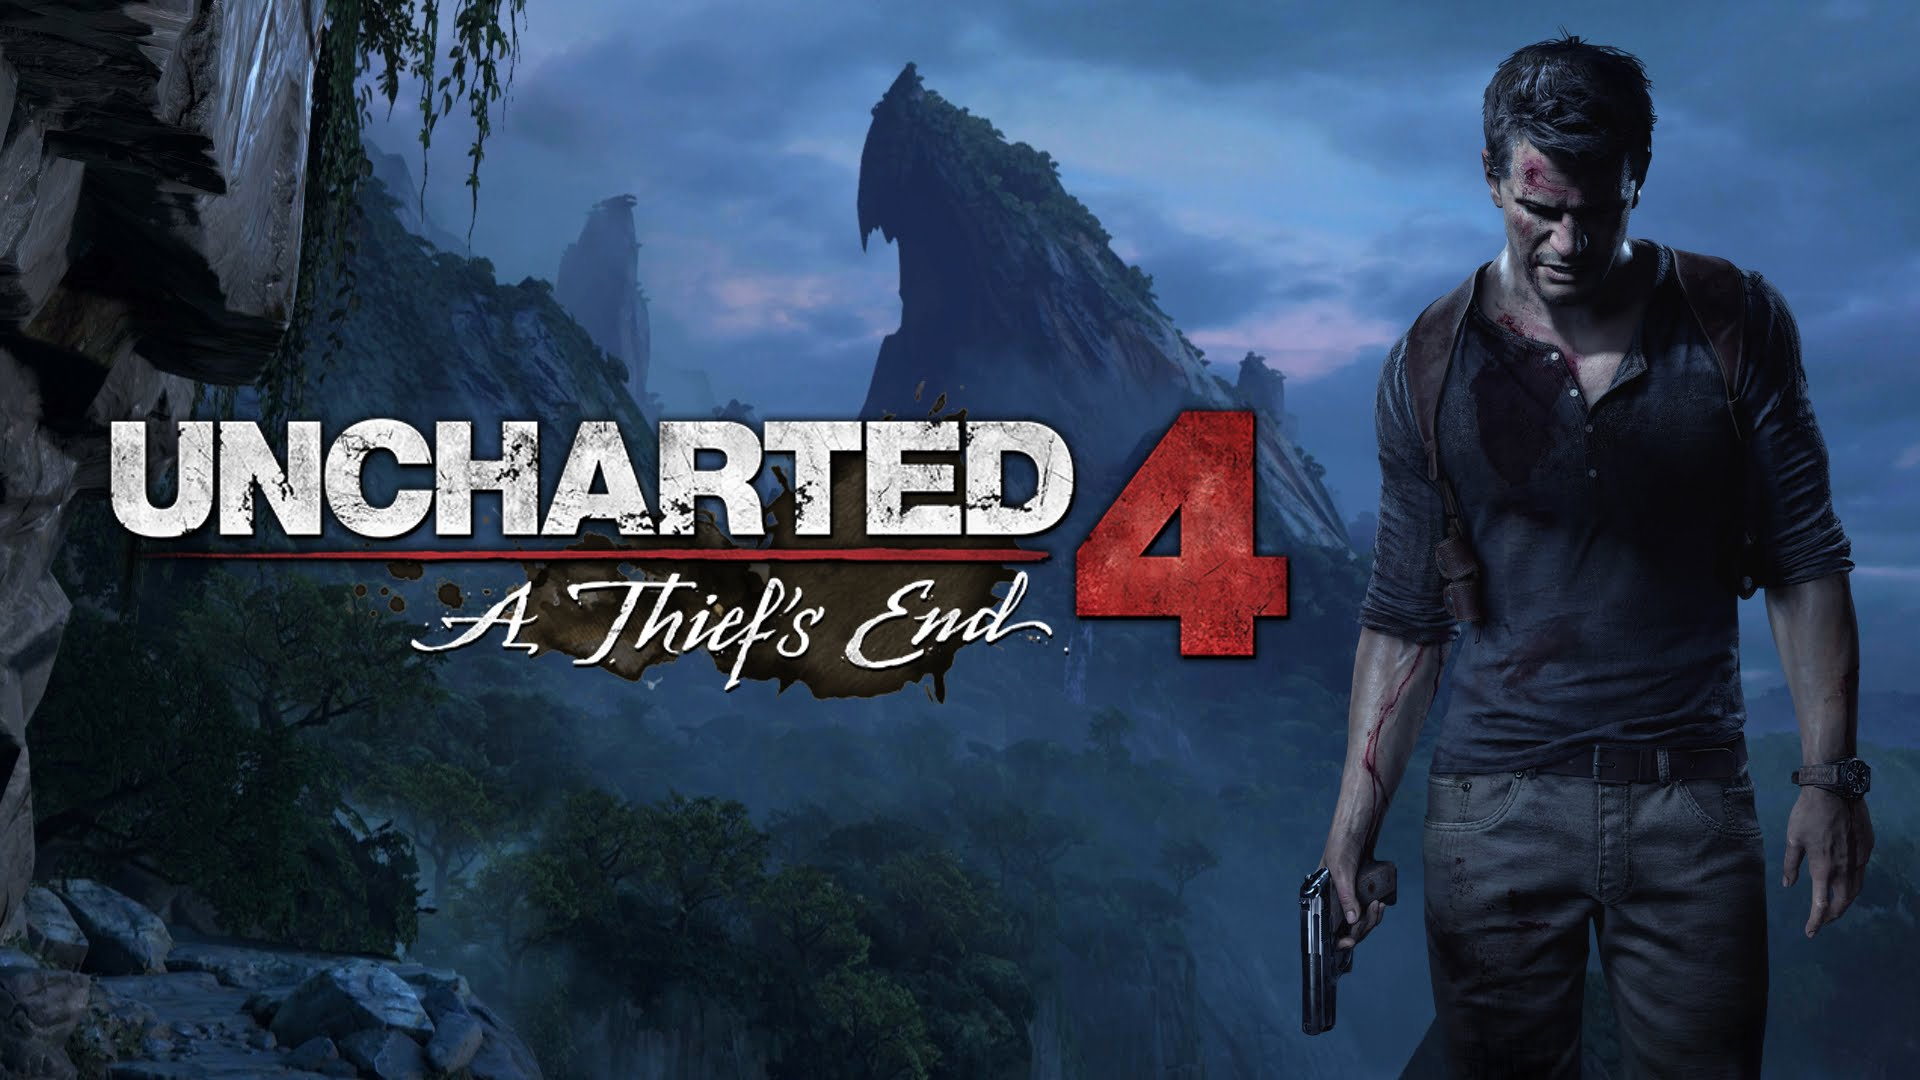 uncharted 4 Uncharted 4 Kamera Arkası Videosu